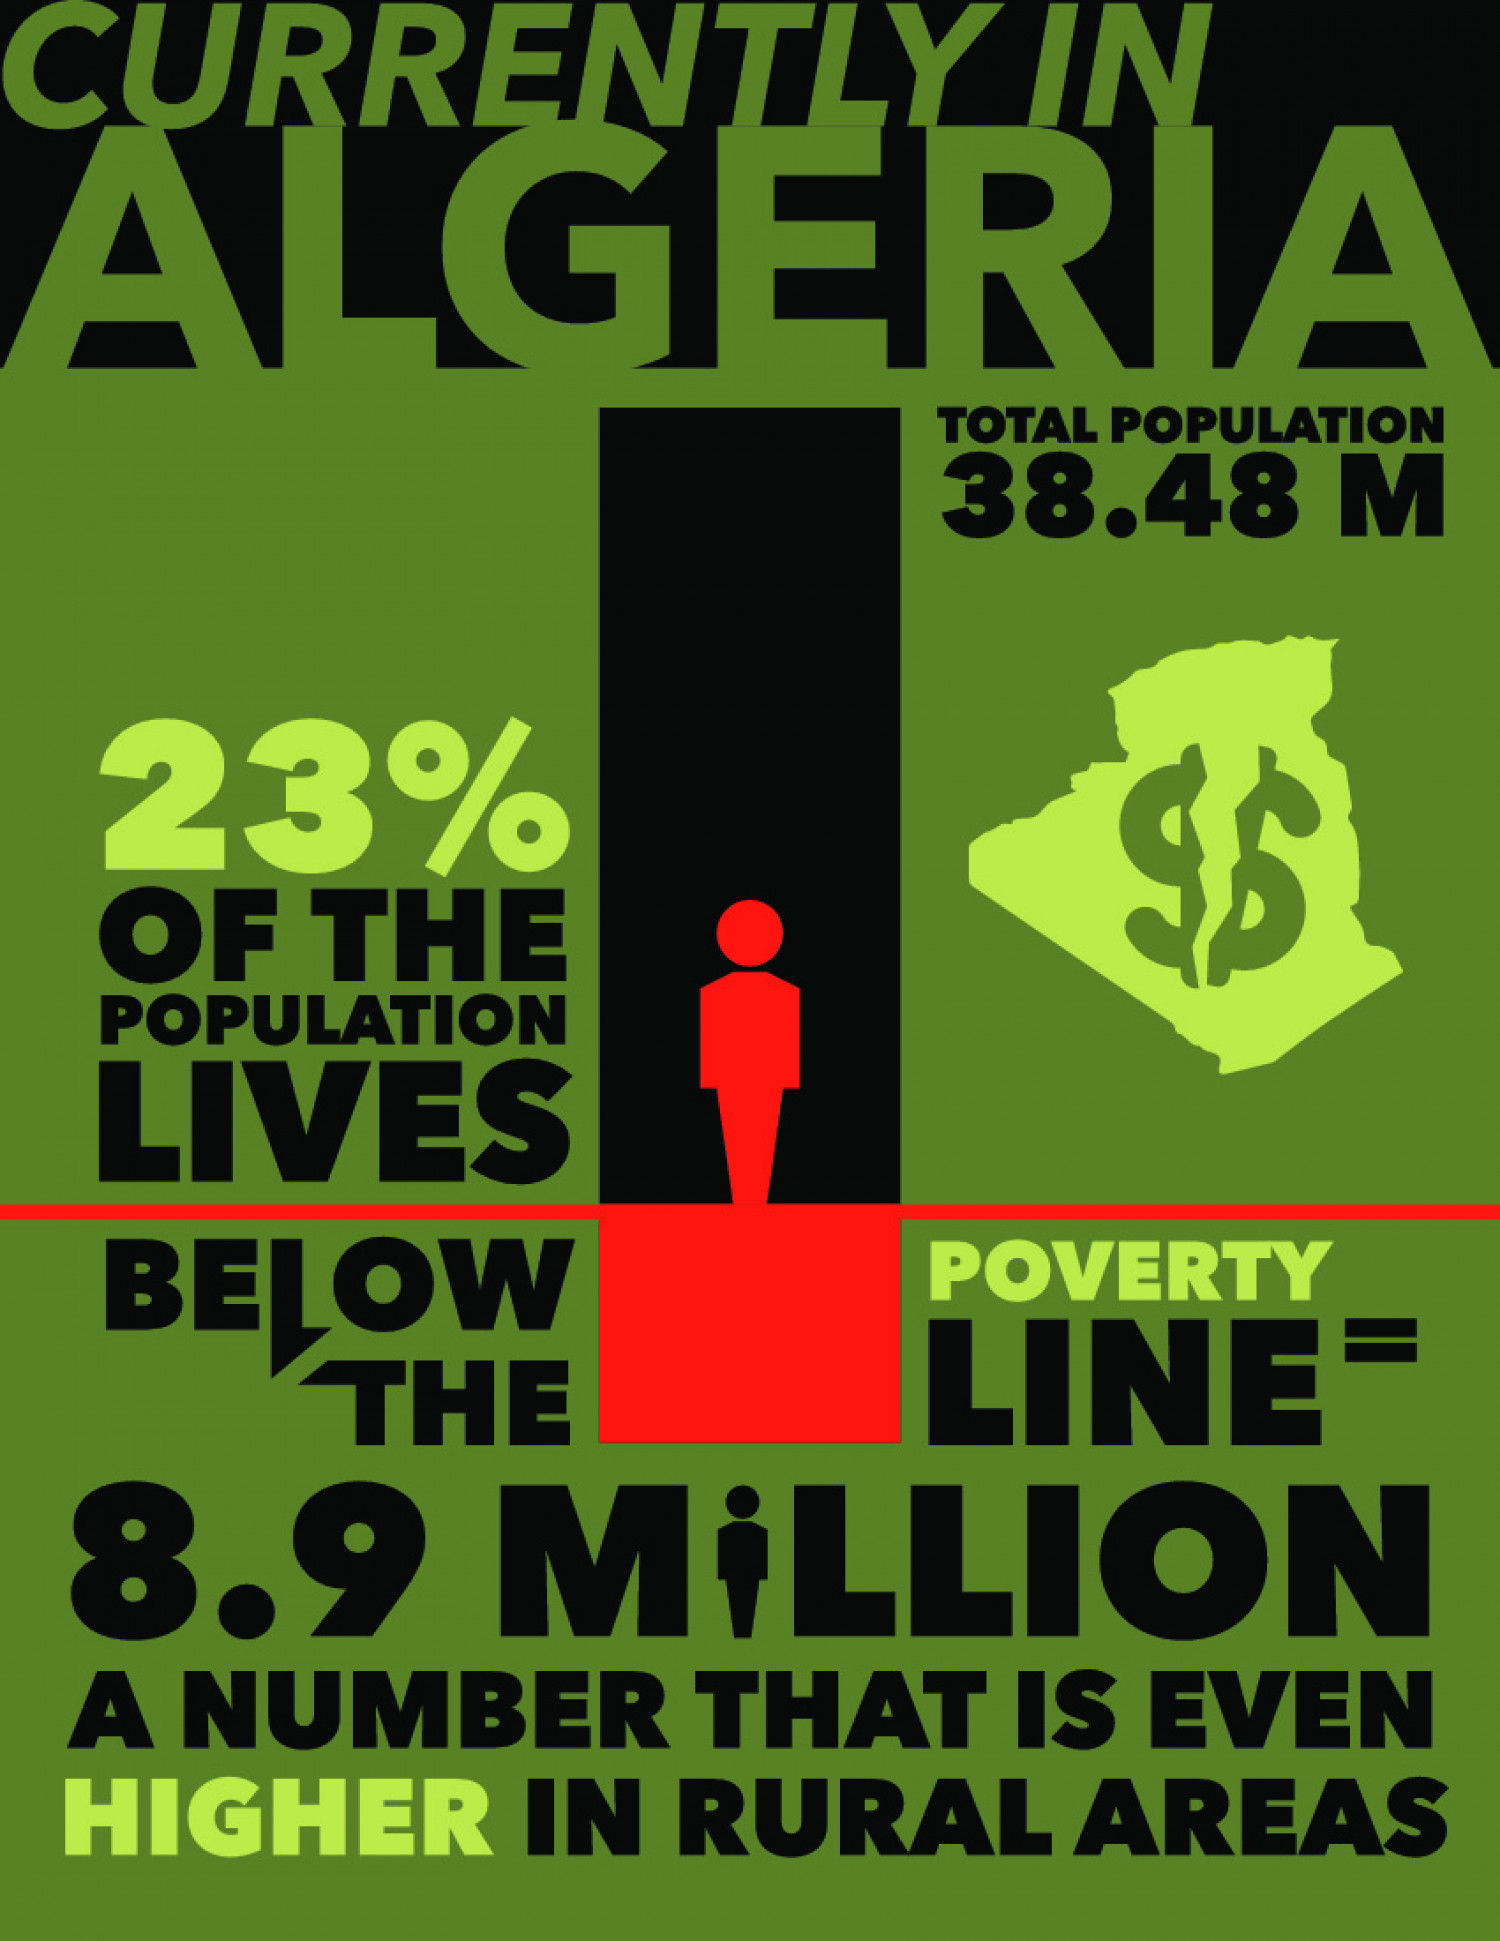 Poverty in Algeria Infographic